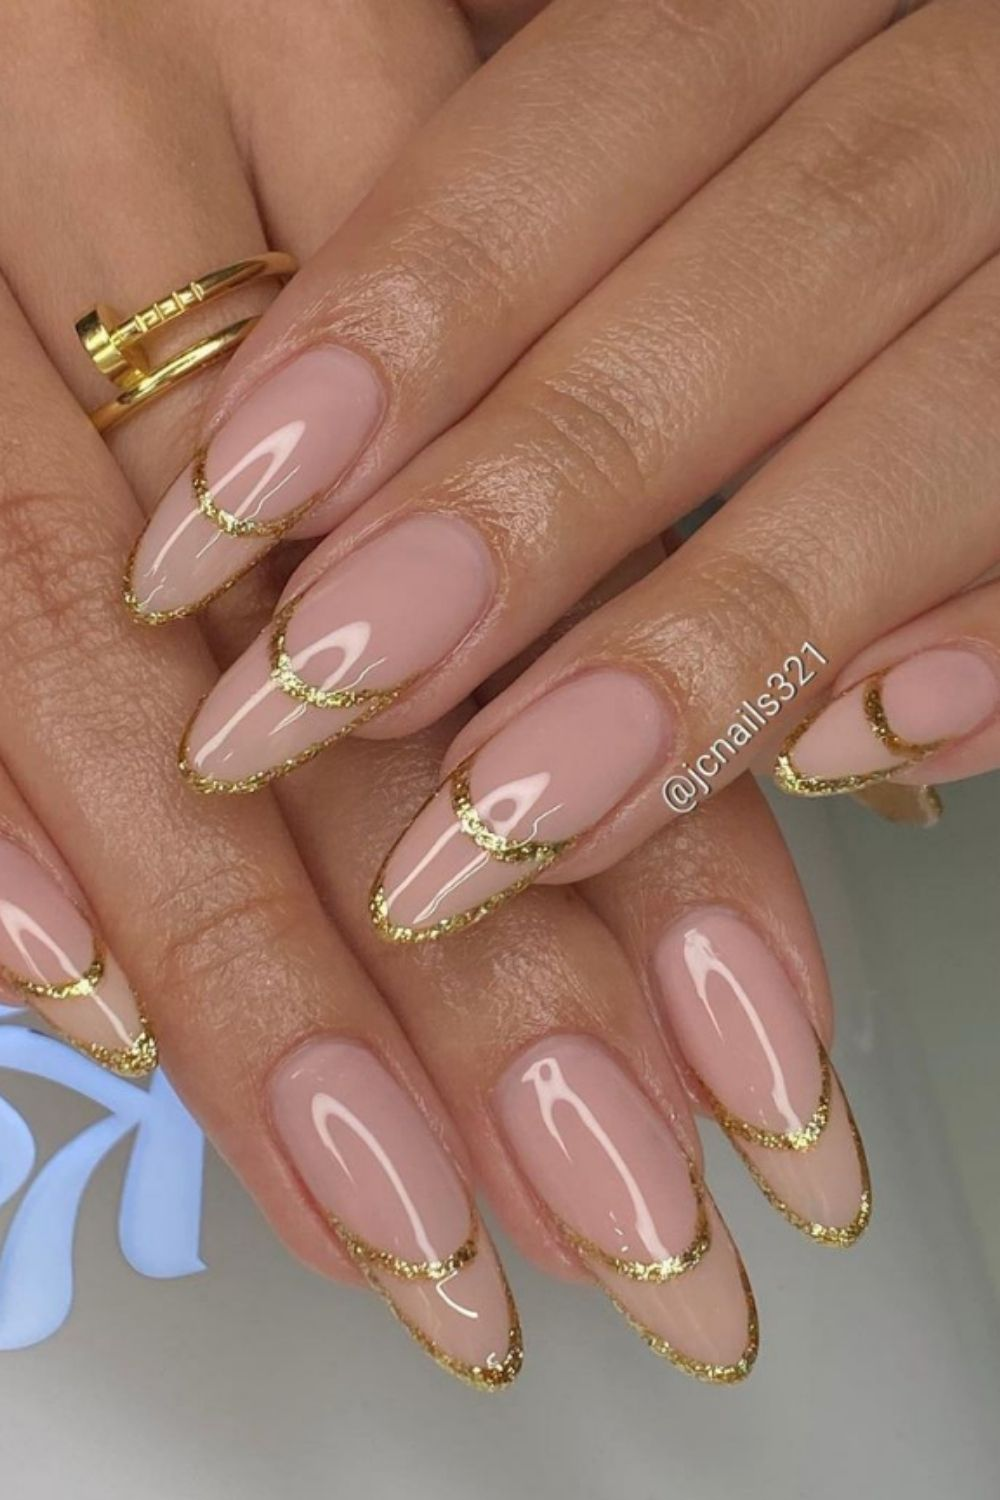 Best long almond nails for you in the summer holiday.